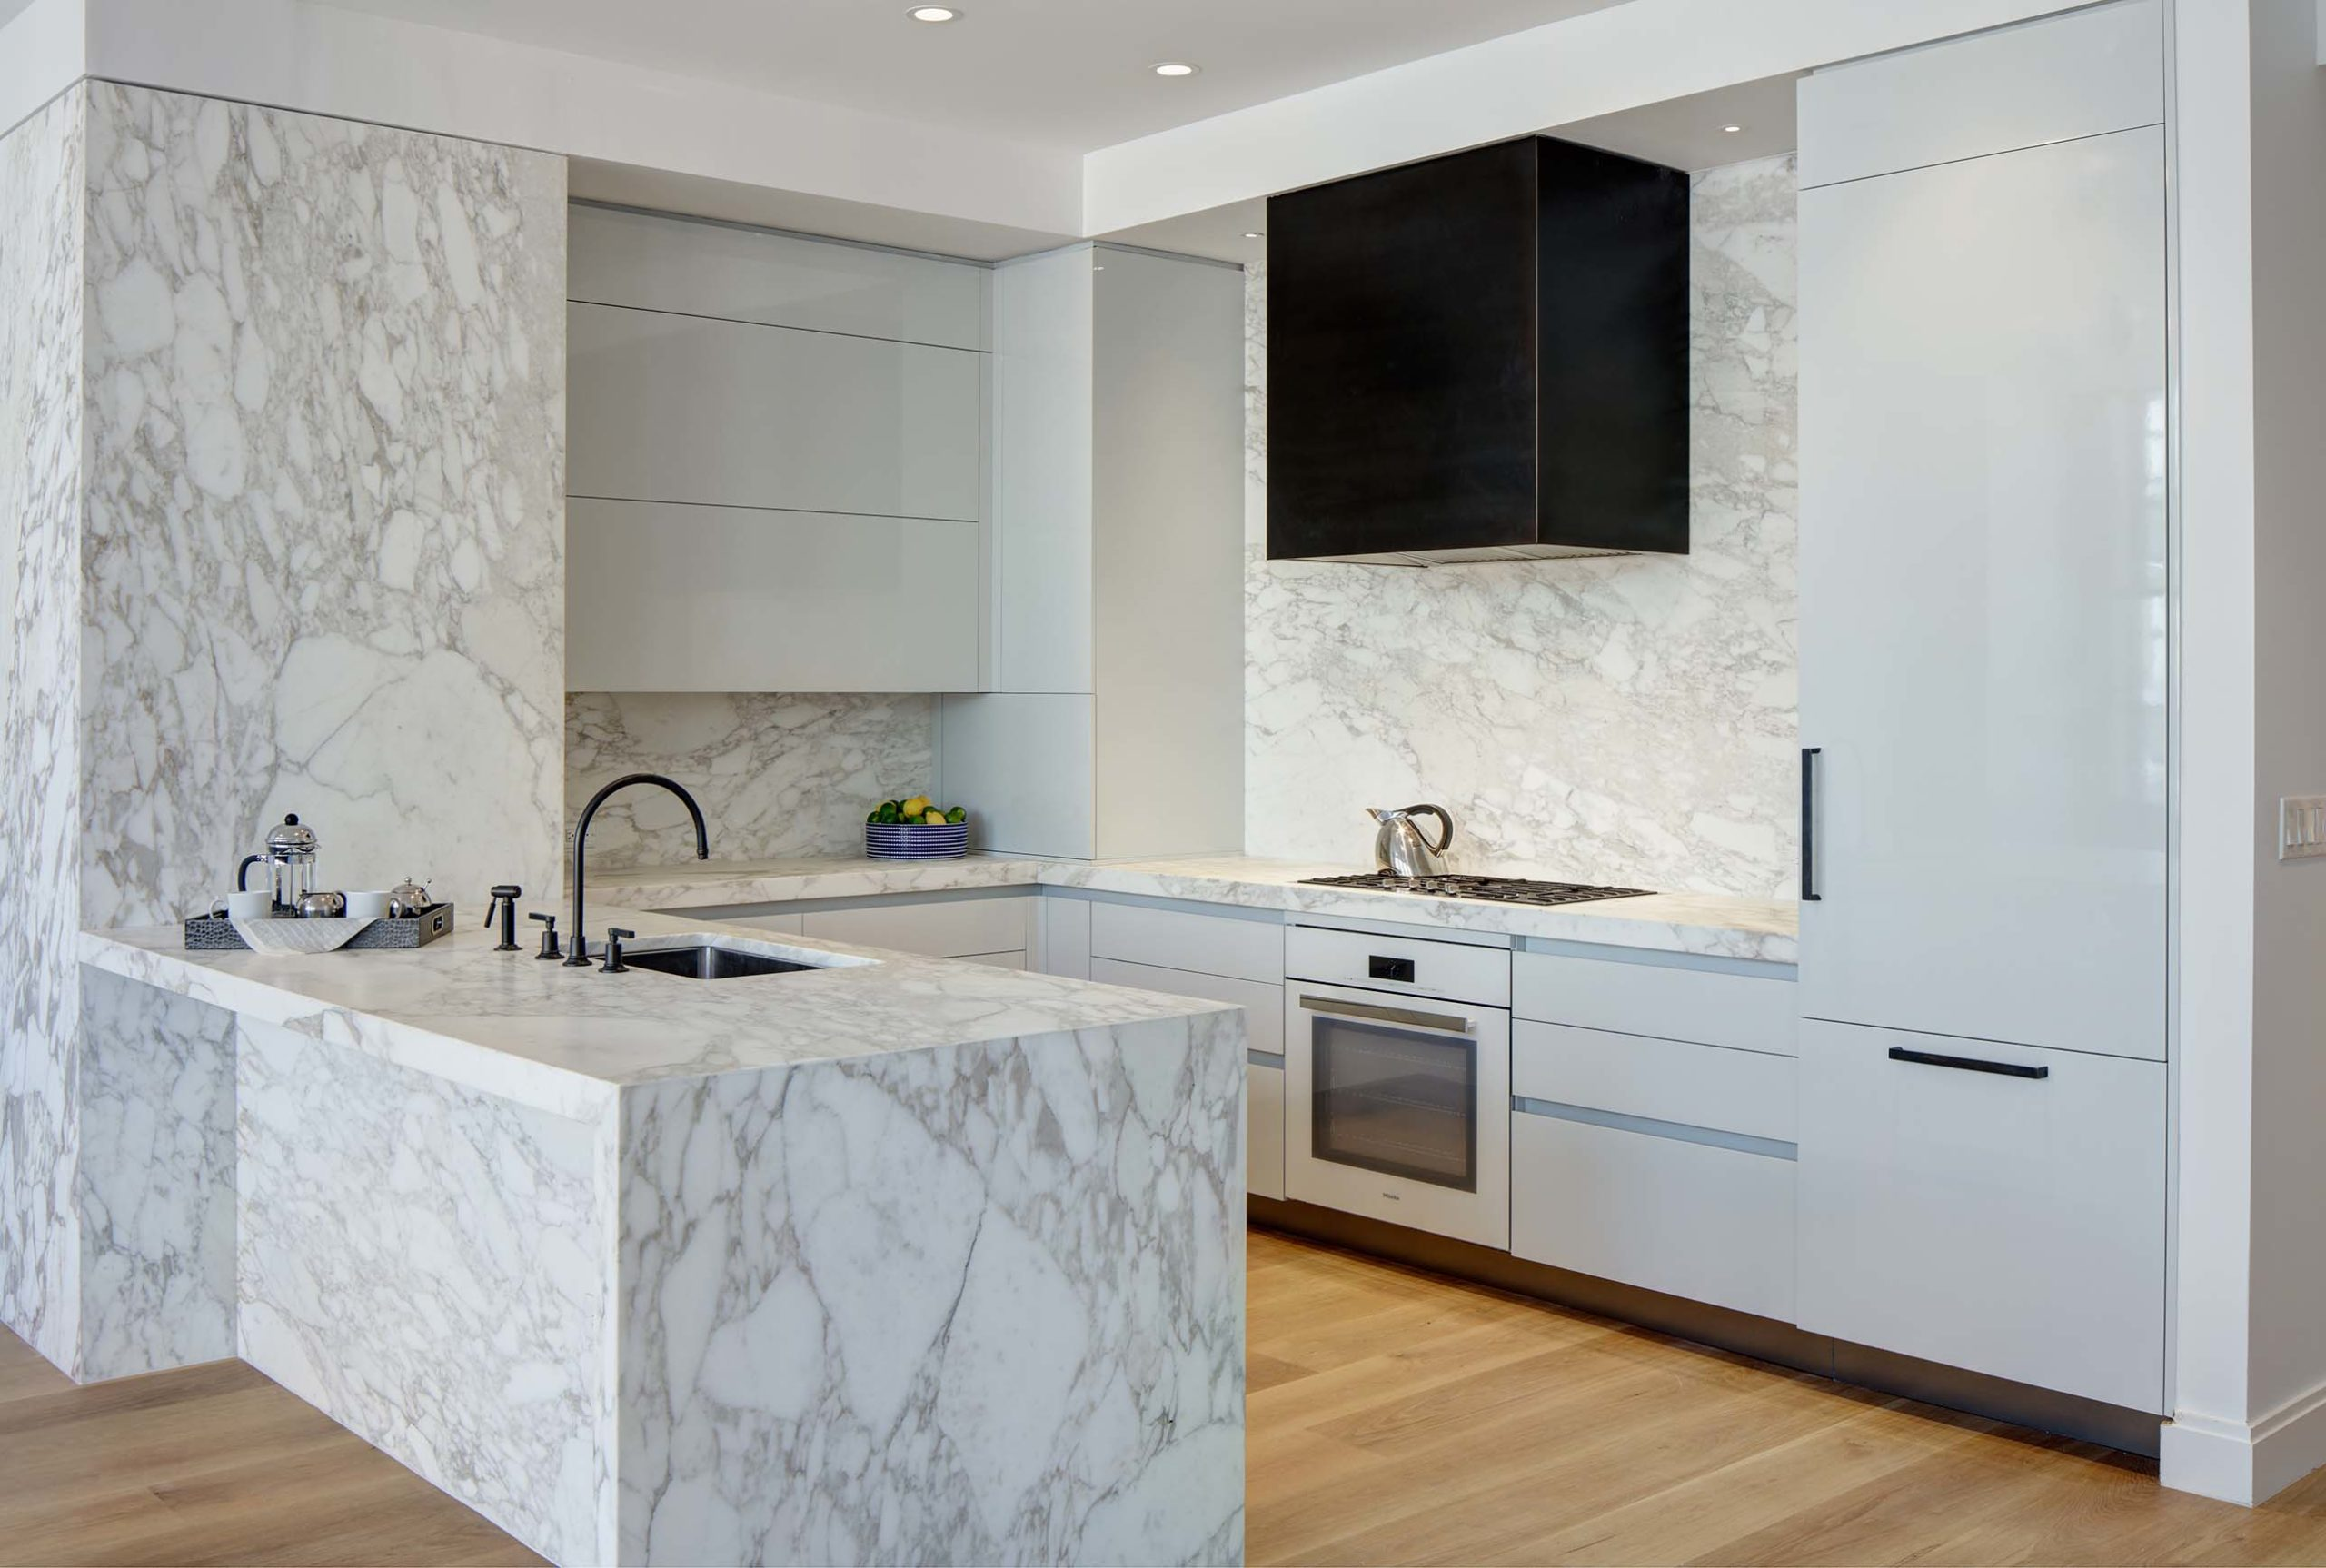 Townhouse Kitchens Inc - 45 Great Jones NYC